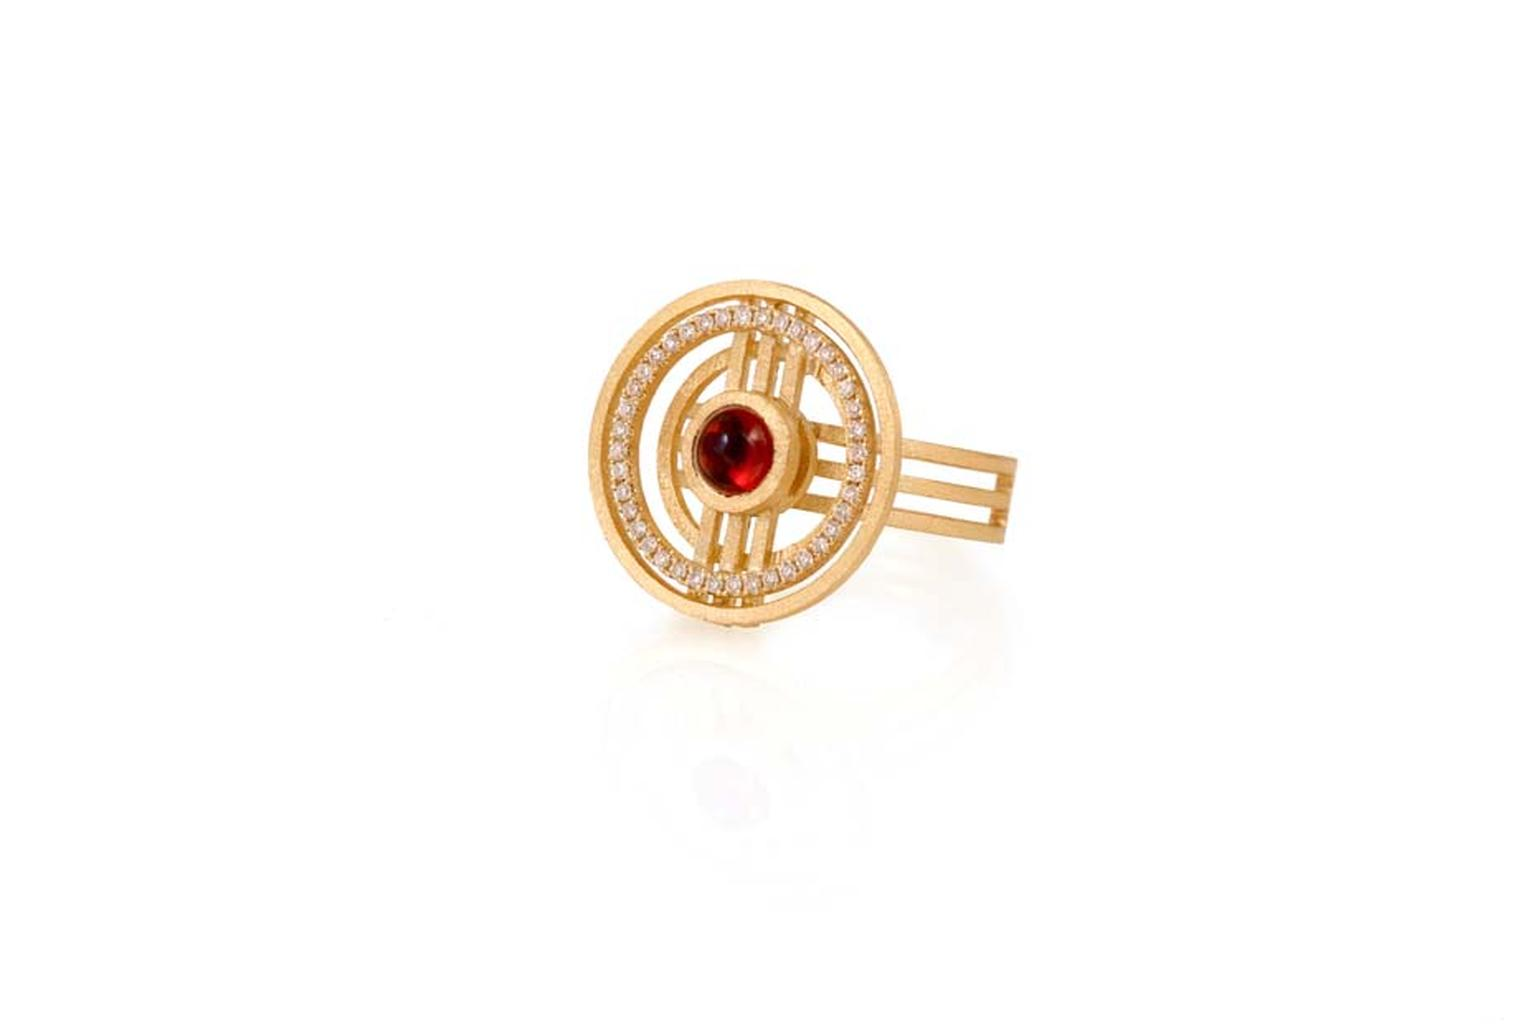 Shimell & Madden ring from the Orb collection in yellow gold with deep red cabochon garnets, orange sapphires and diamonds.